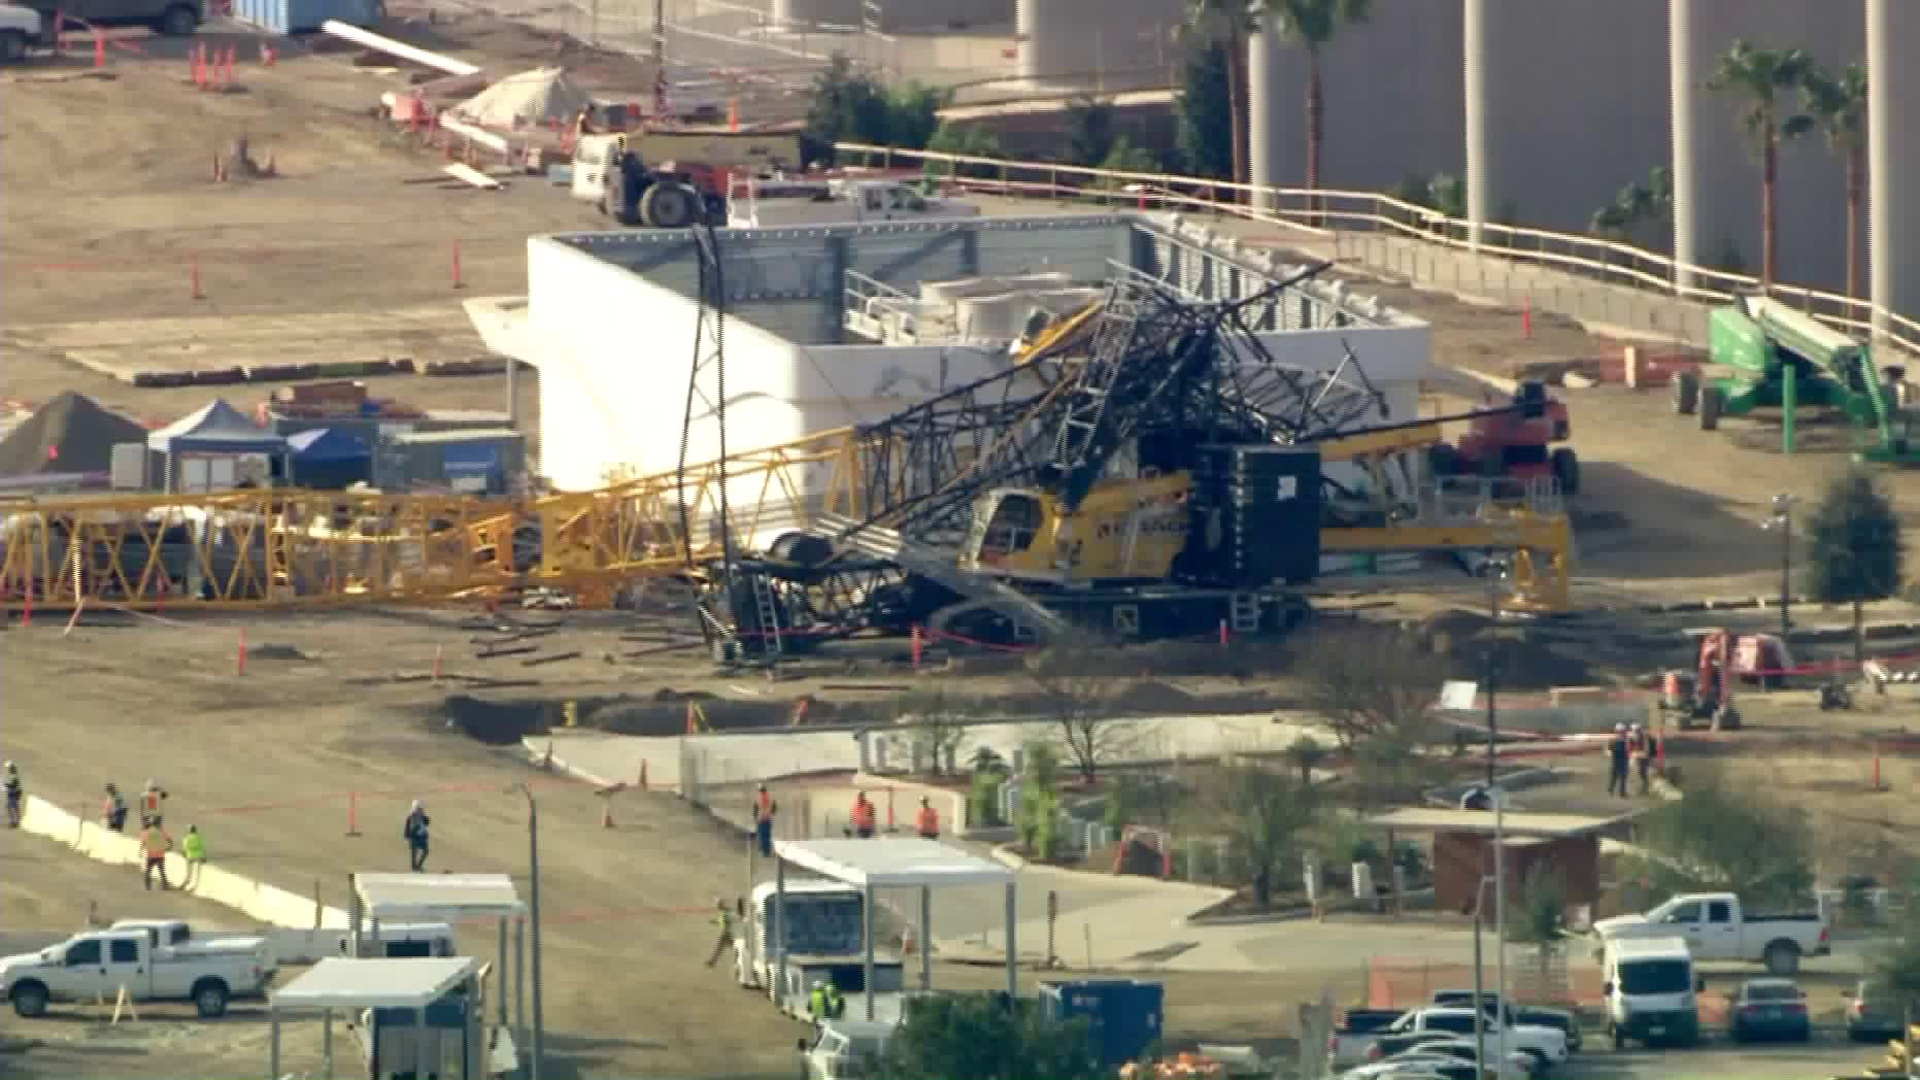 A crane collapsed outside the under-construction SoFi Stadium in Inglewood on Feb. 28, 2020. (Credit: KTLA)